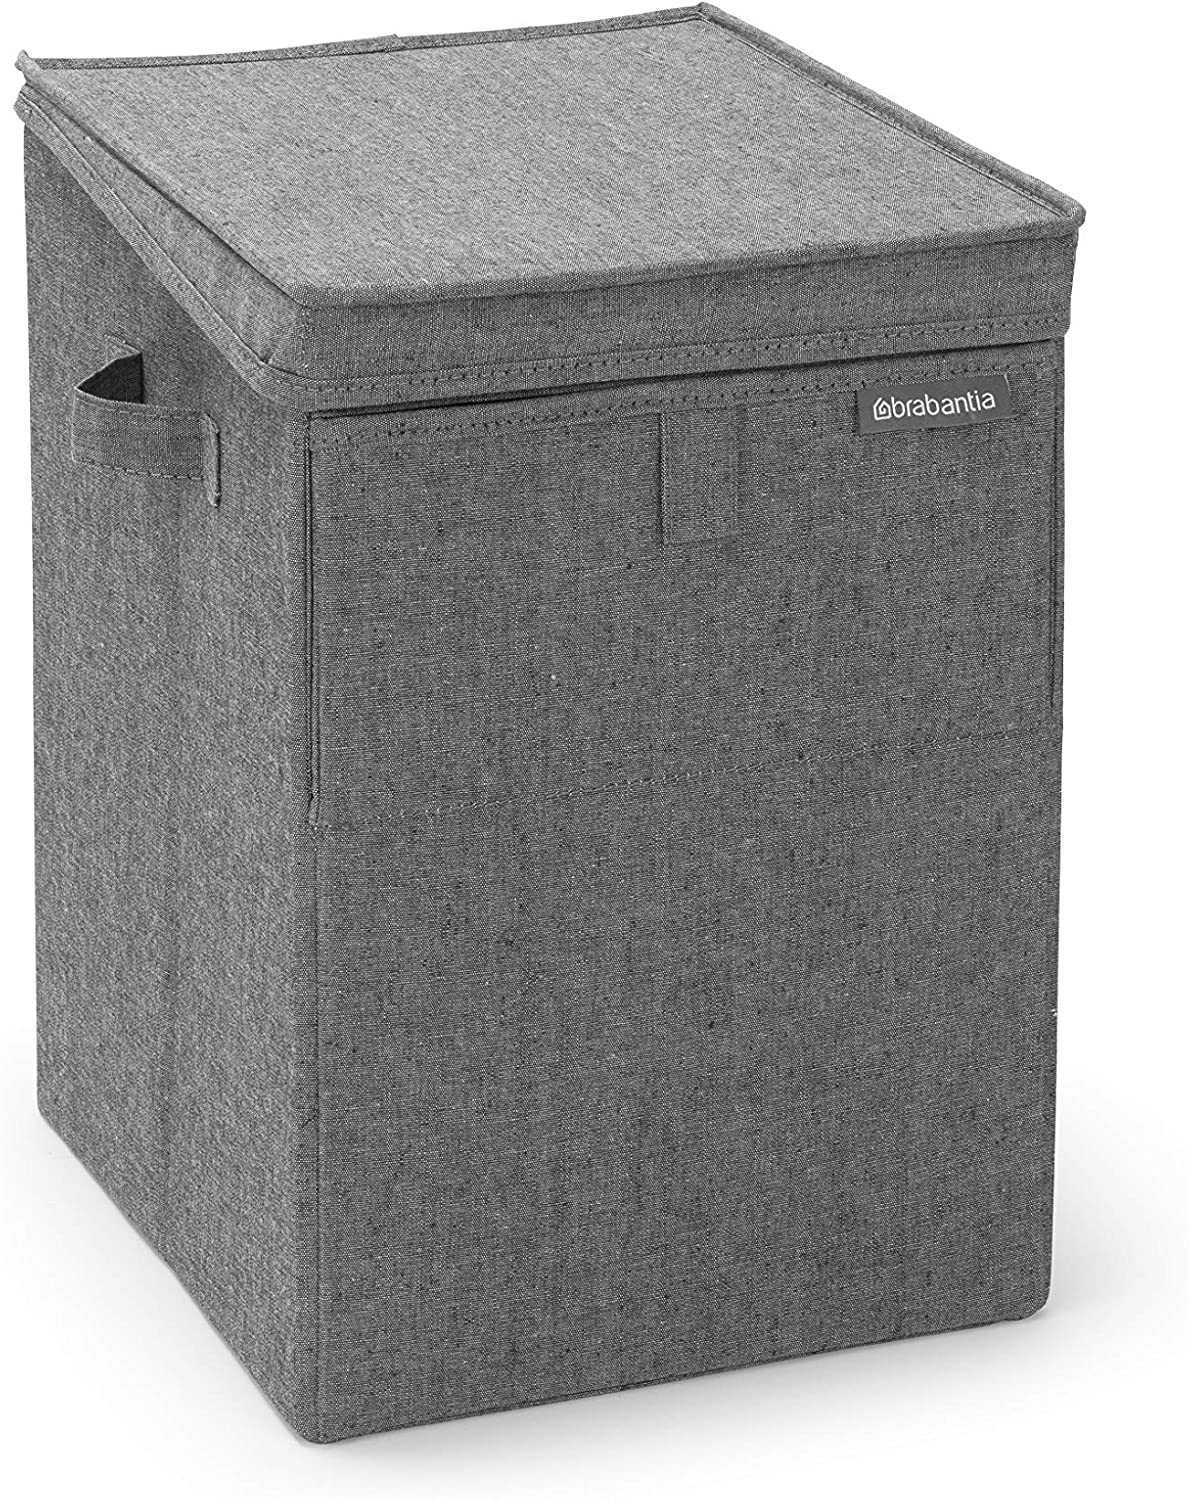 Brabantia Stackable Laundry Box, 9.2 Gallon (35L), Pepper Black